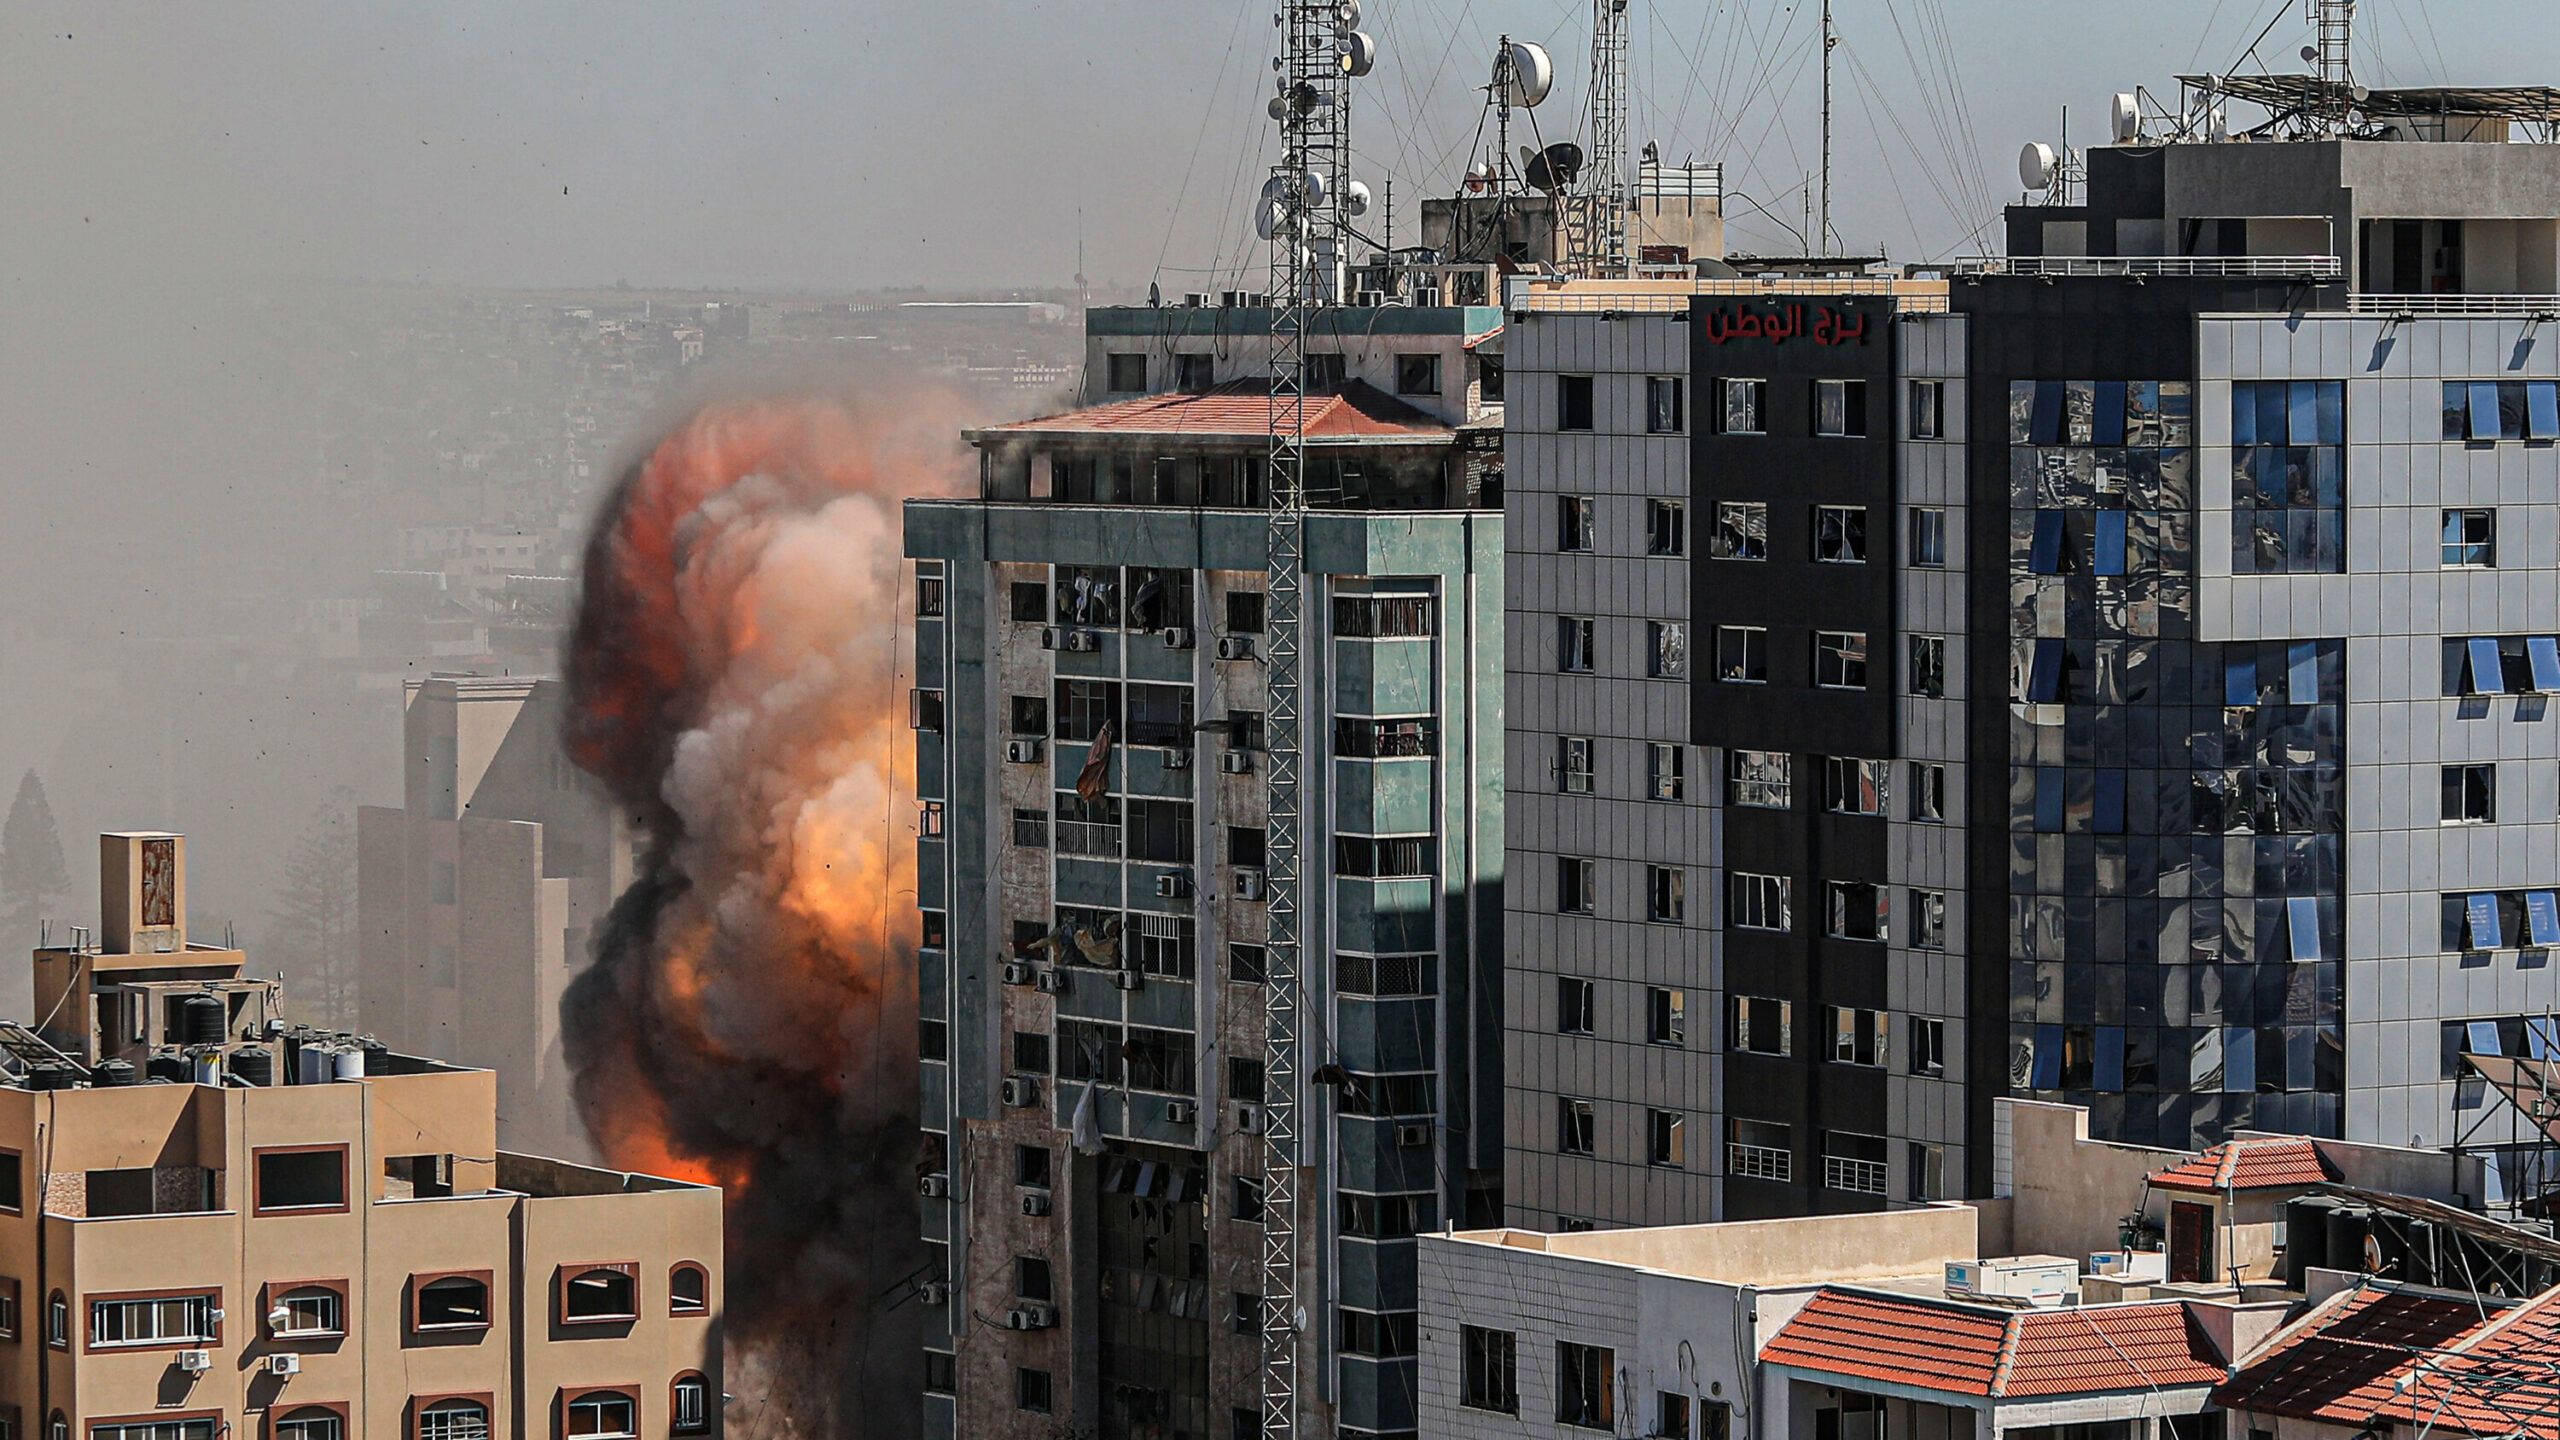 Airstrike attack on building that housed The Associated Press, source: New York Times